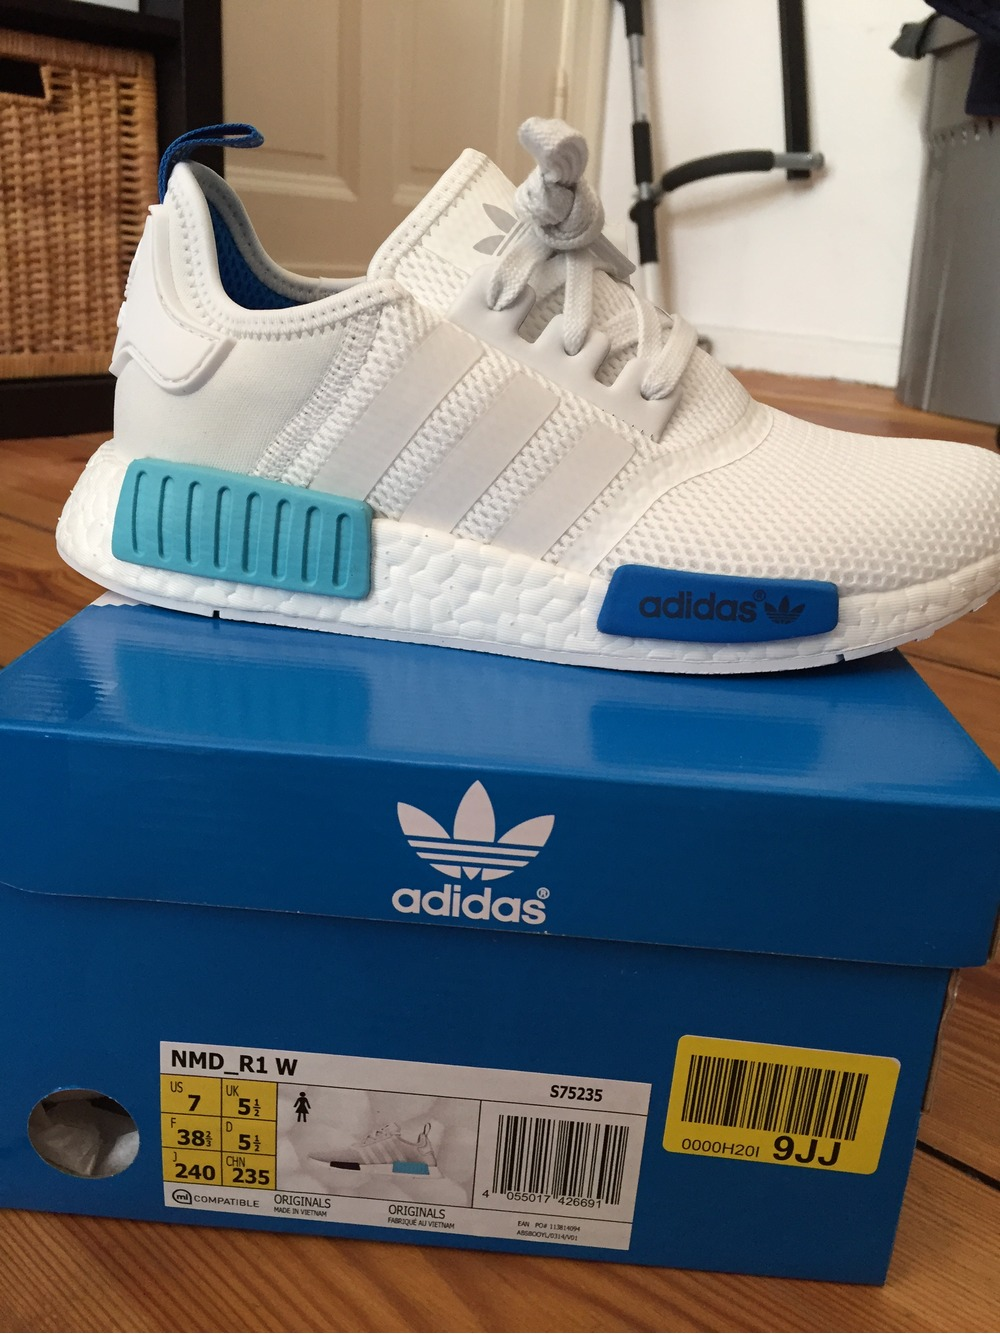 yhmmyf Adidas NMD R1 White Blue (#314591) from hozenplotz at KLEKT